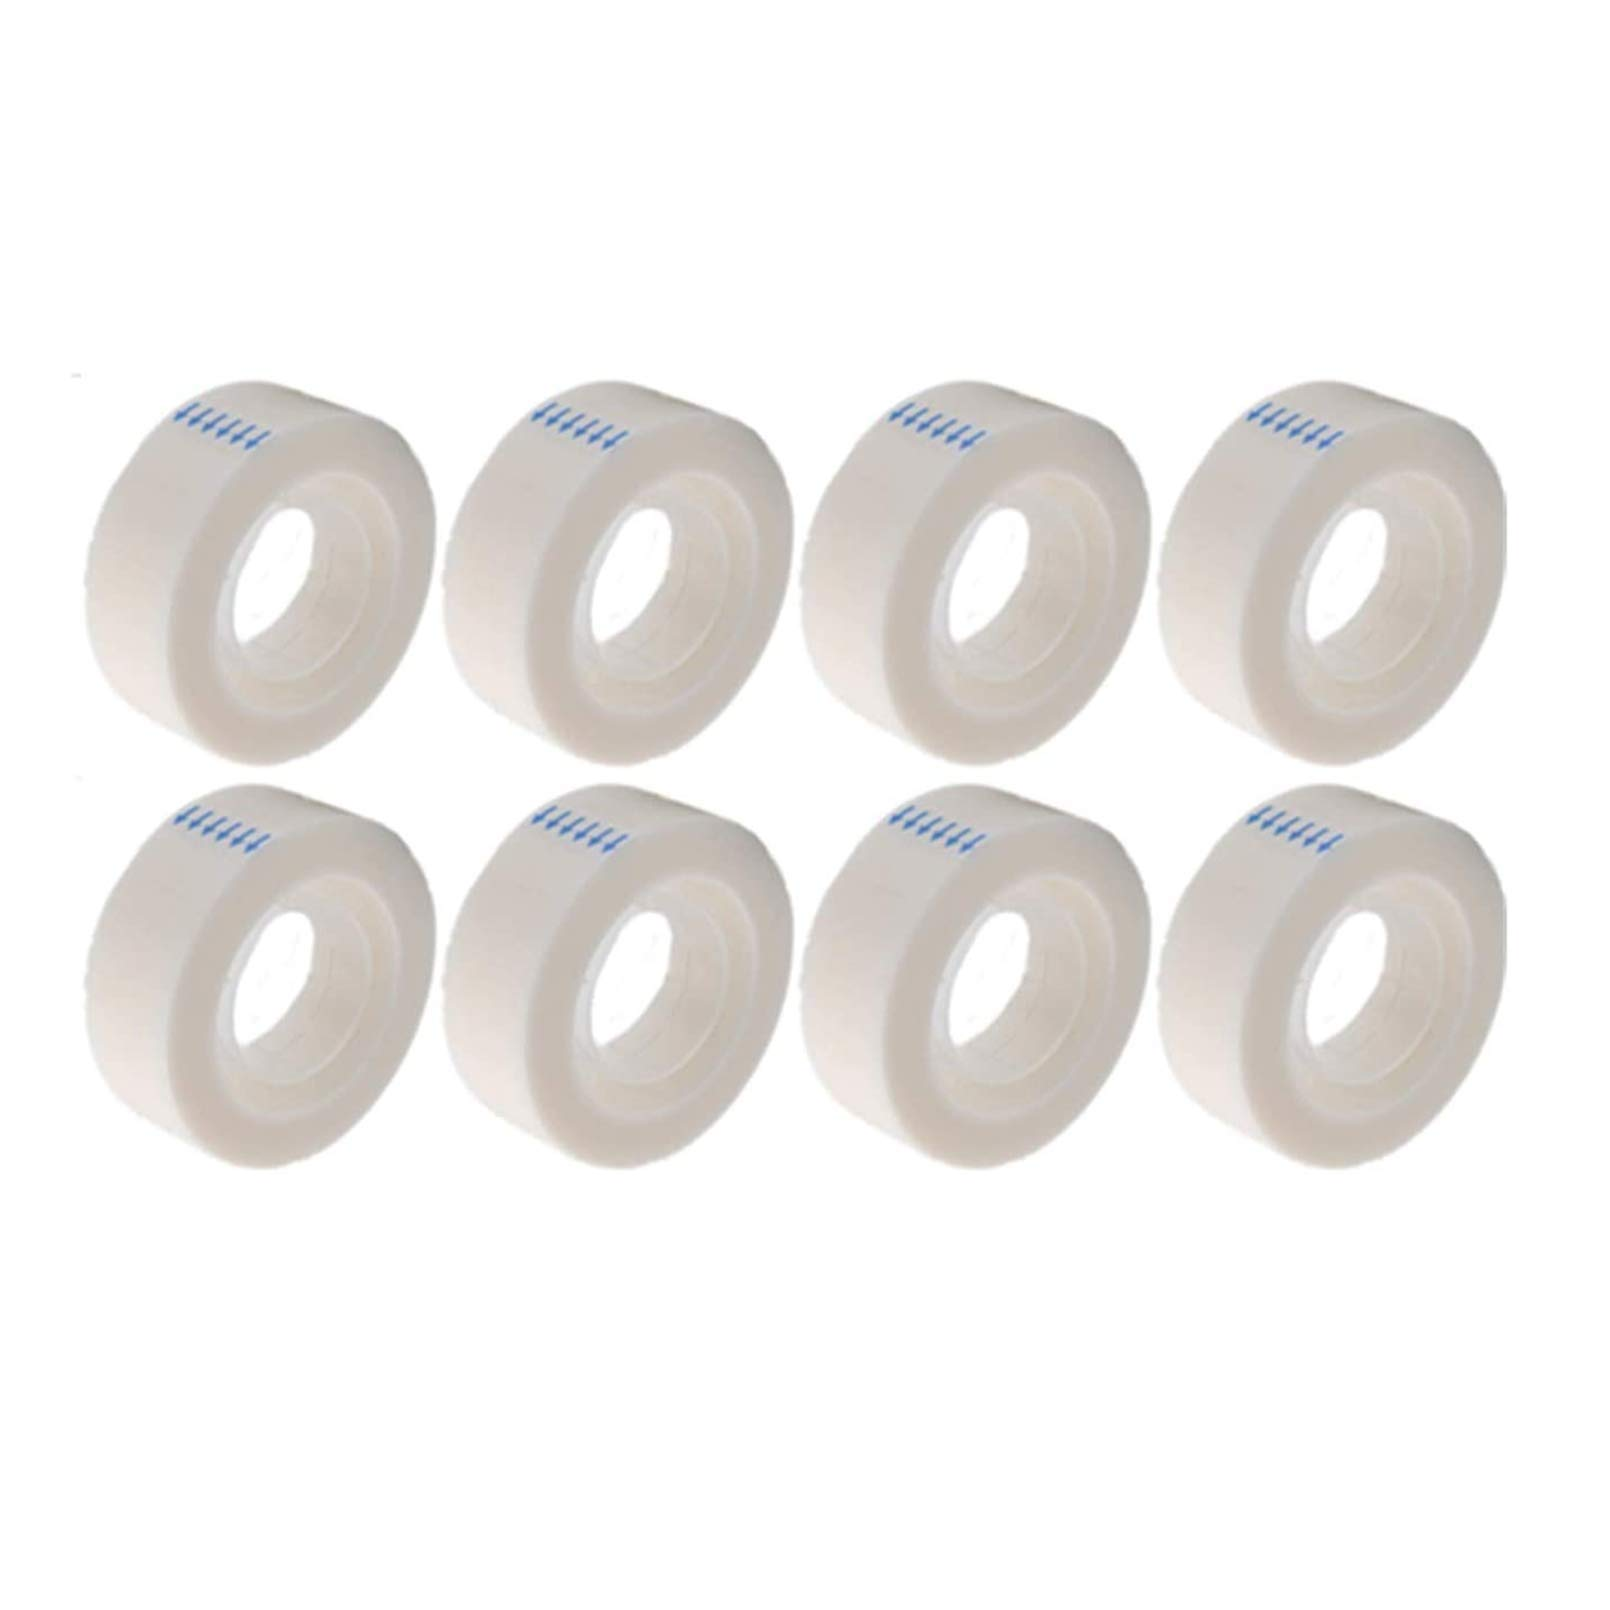 MJUNM 8 Rolls Invisible Tape Matte Tape Repairing Writeable Tape Clear Tape, Transparent Tape Refills for Dispenser, Engineered for Office and Home Use, 3/4 inch x 1000 inch, 1 inch Core